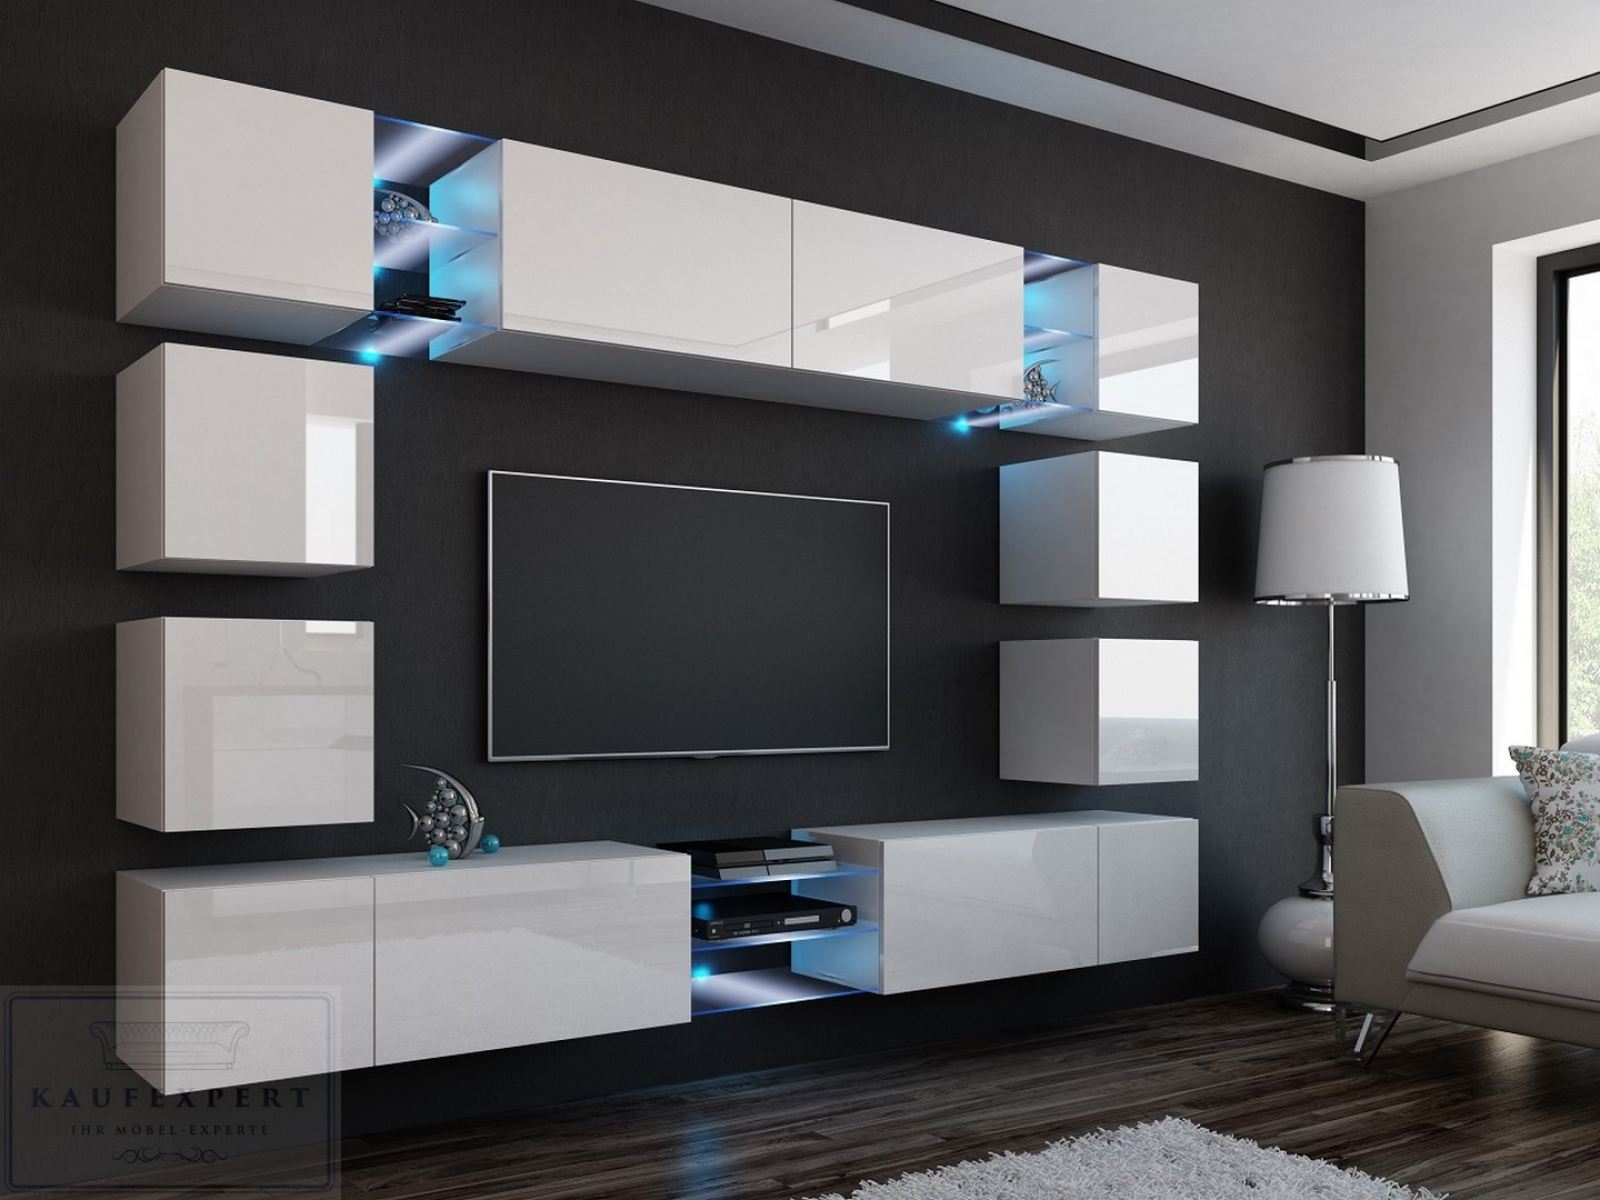 kaufexpert sofort wohnwand edge wei hochglanz wei. Black Bedroom Furniture Sets. Home Design Ideas